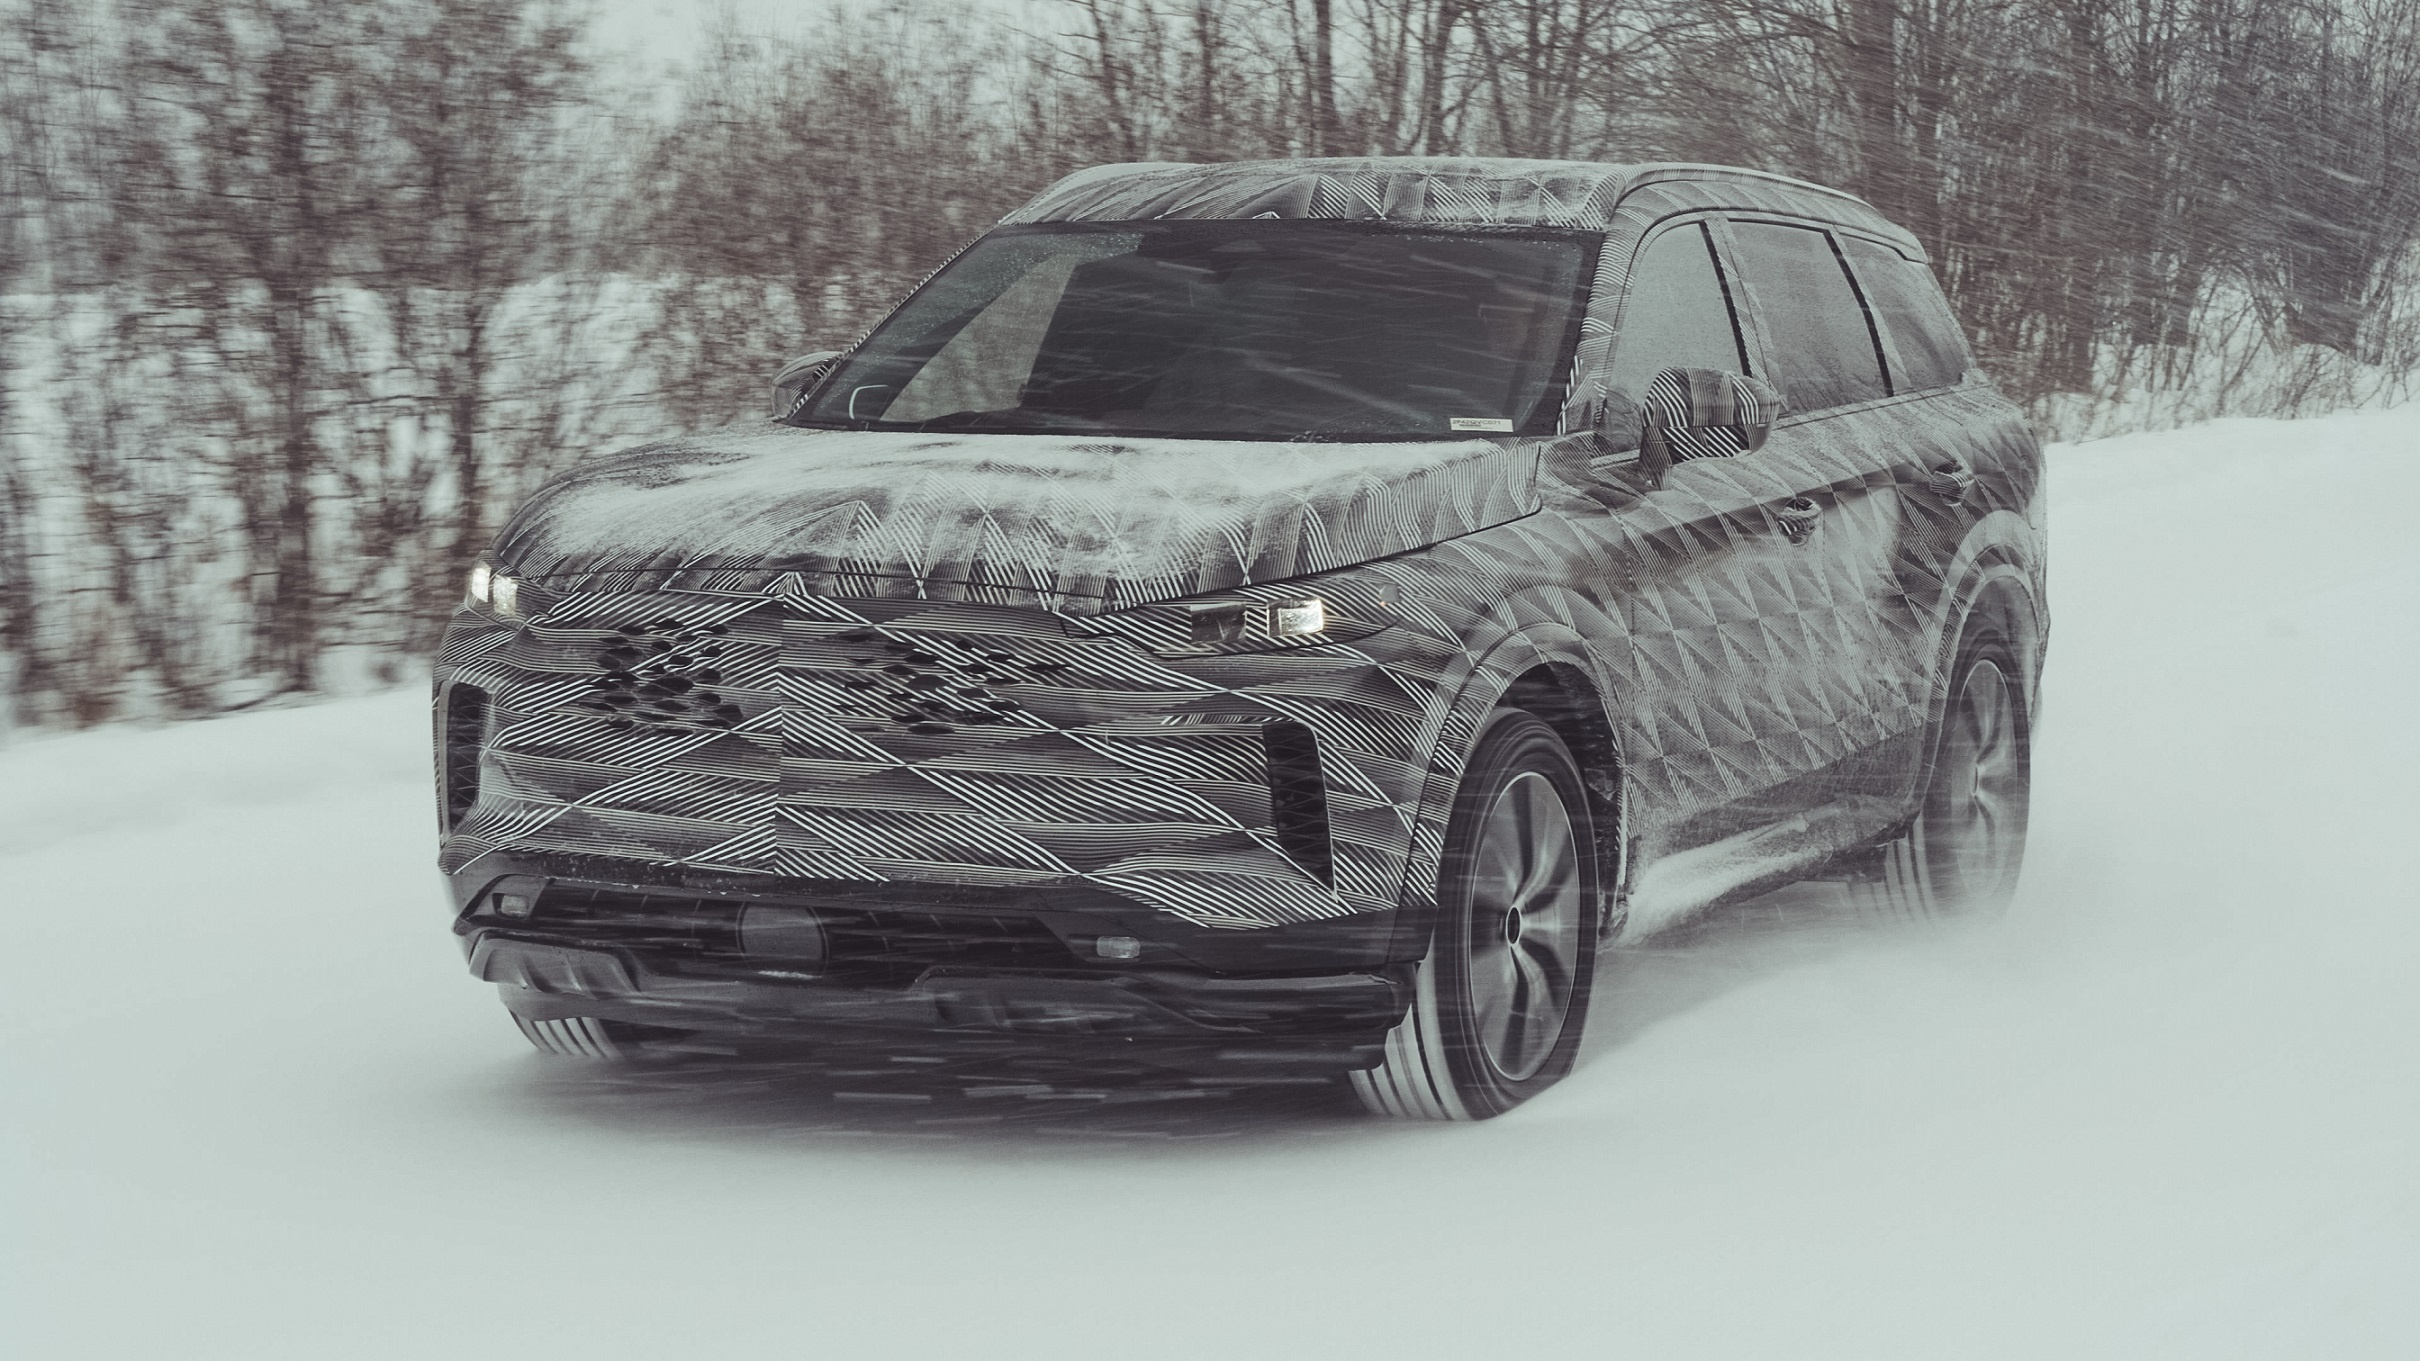 Improved Intelligent All-Wheel Drive for all-new INFINITI QX60 offers enhanced driving dynamics